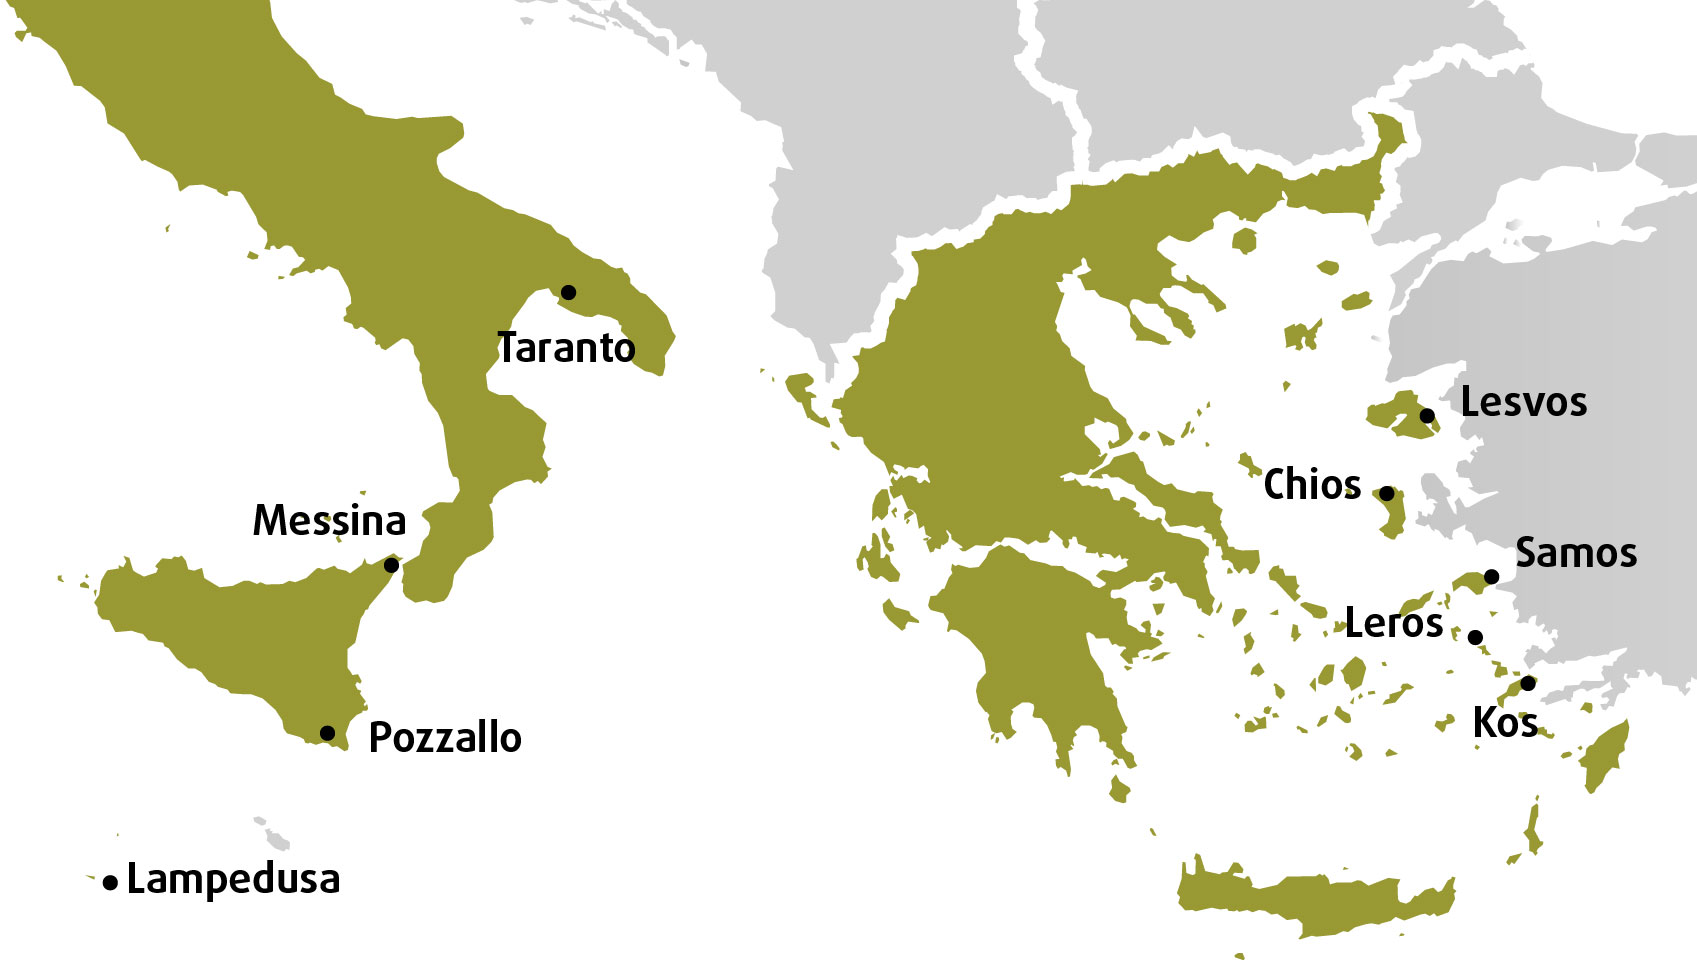 Map of hotspots, 5 in Greece and 5 in Italy